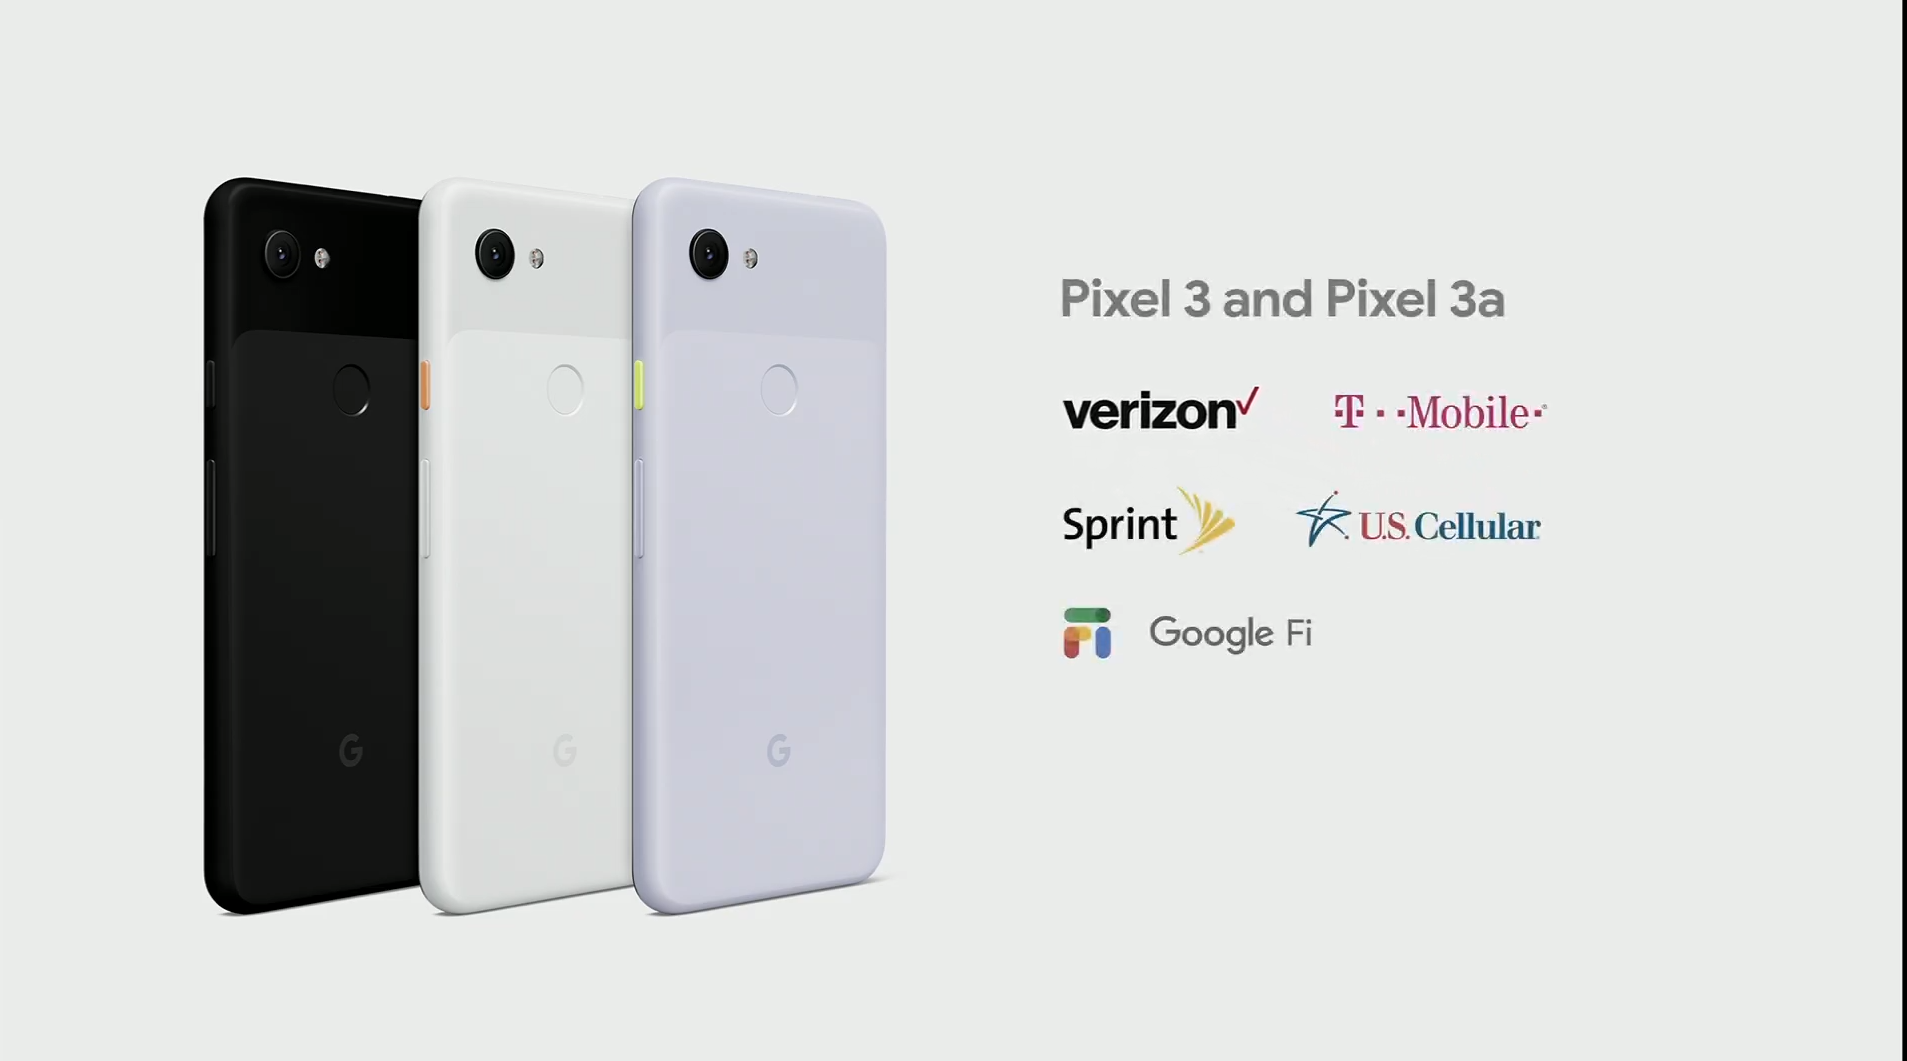 Google Pixel 3a and 3a XL will launch starting at $399